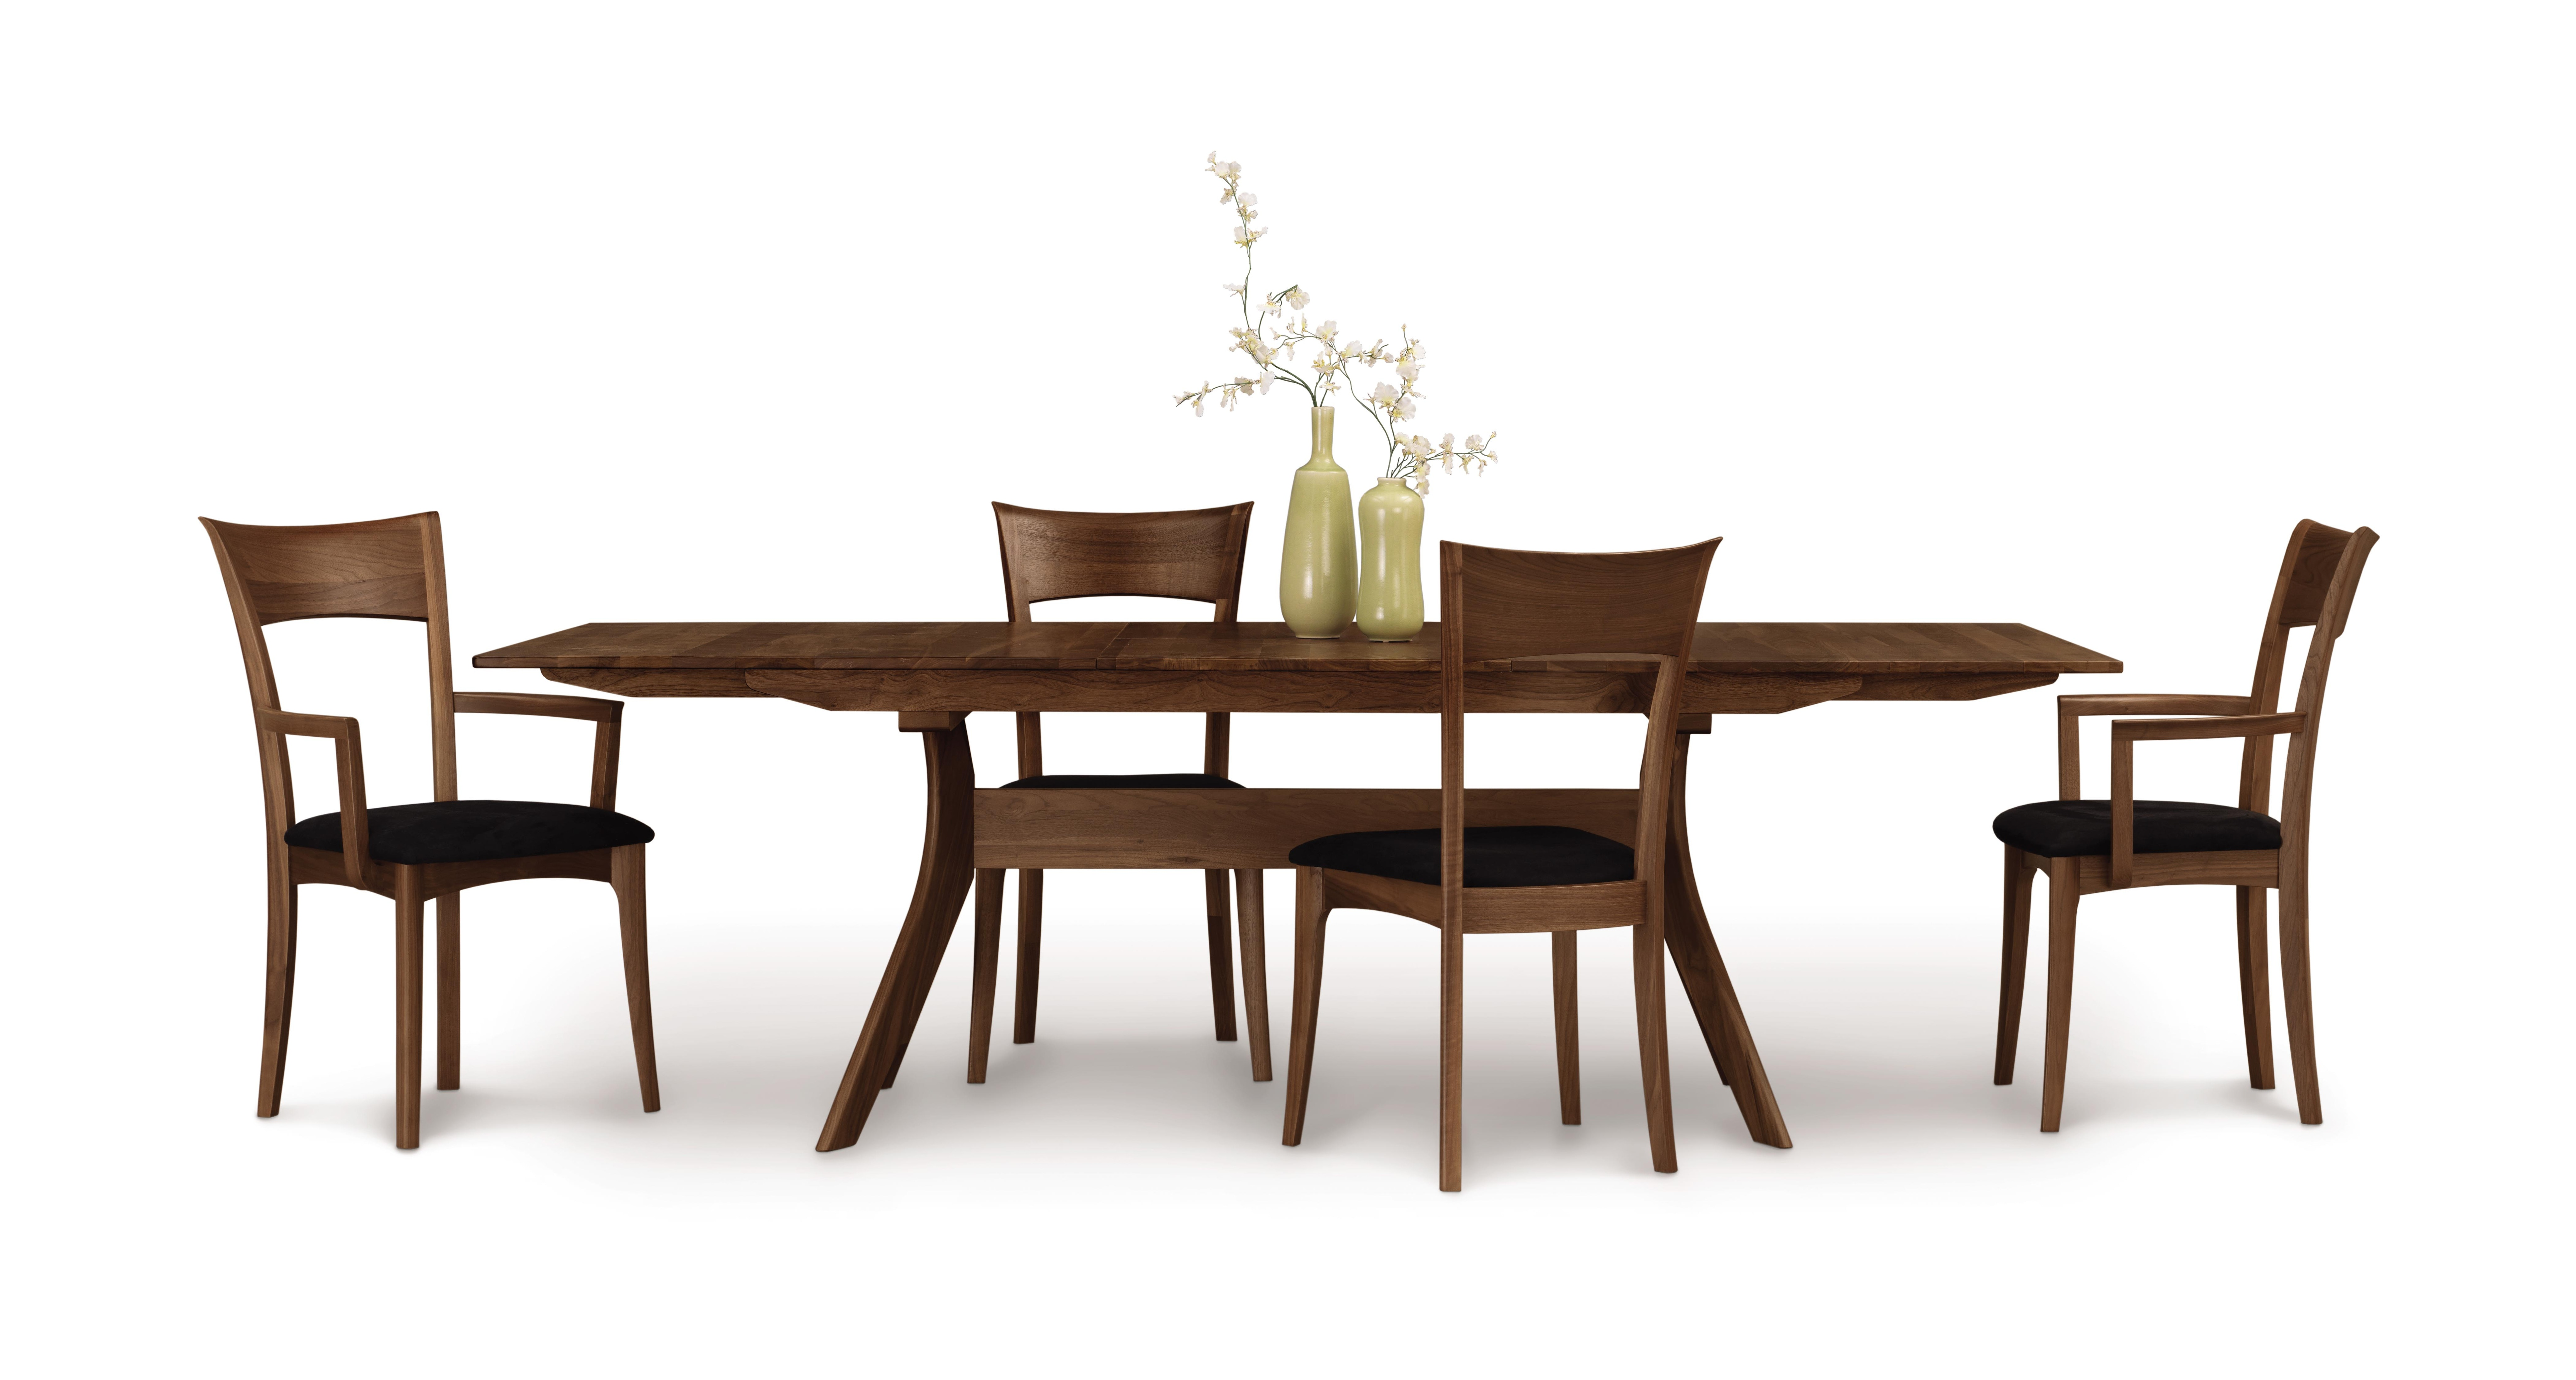 Amazing Copeland Audrey Extension Table With EasyStow Extension And Leaf Storage In  Walnut 6 AUD